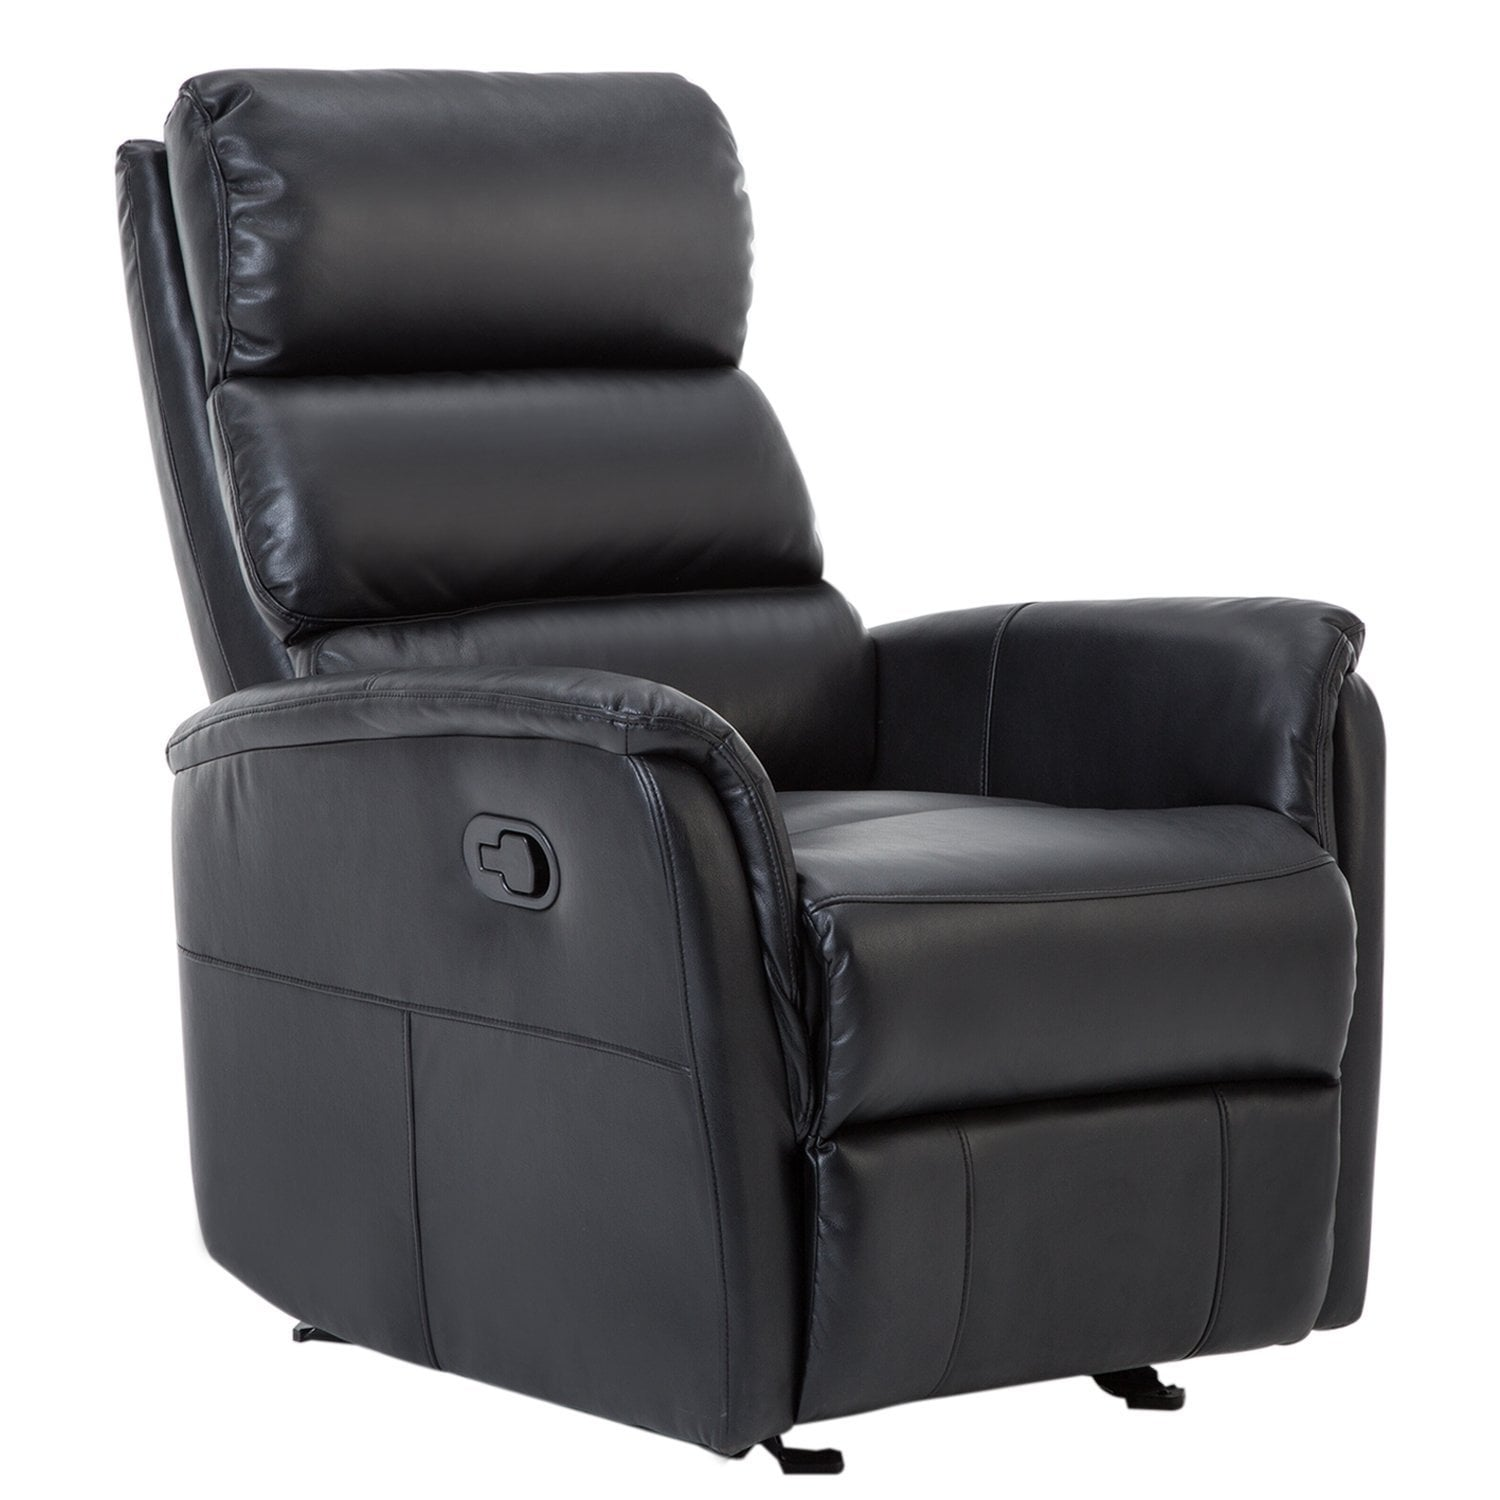 BONZY Glider Recliner Chair Leather Chair with Super Comfy Gliding Track - Black